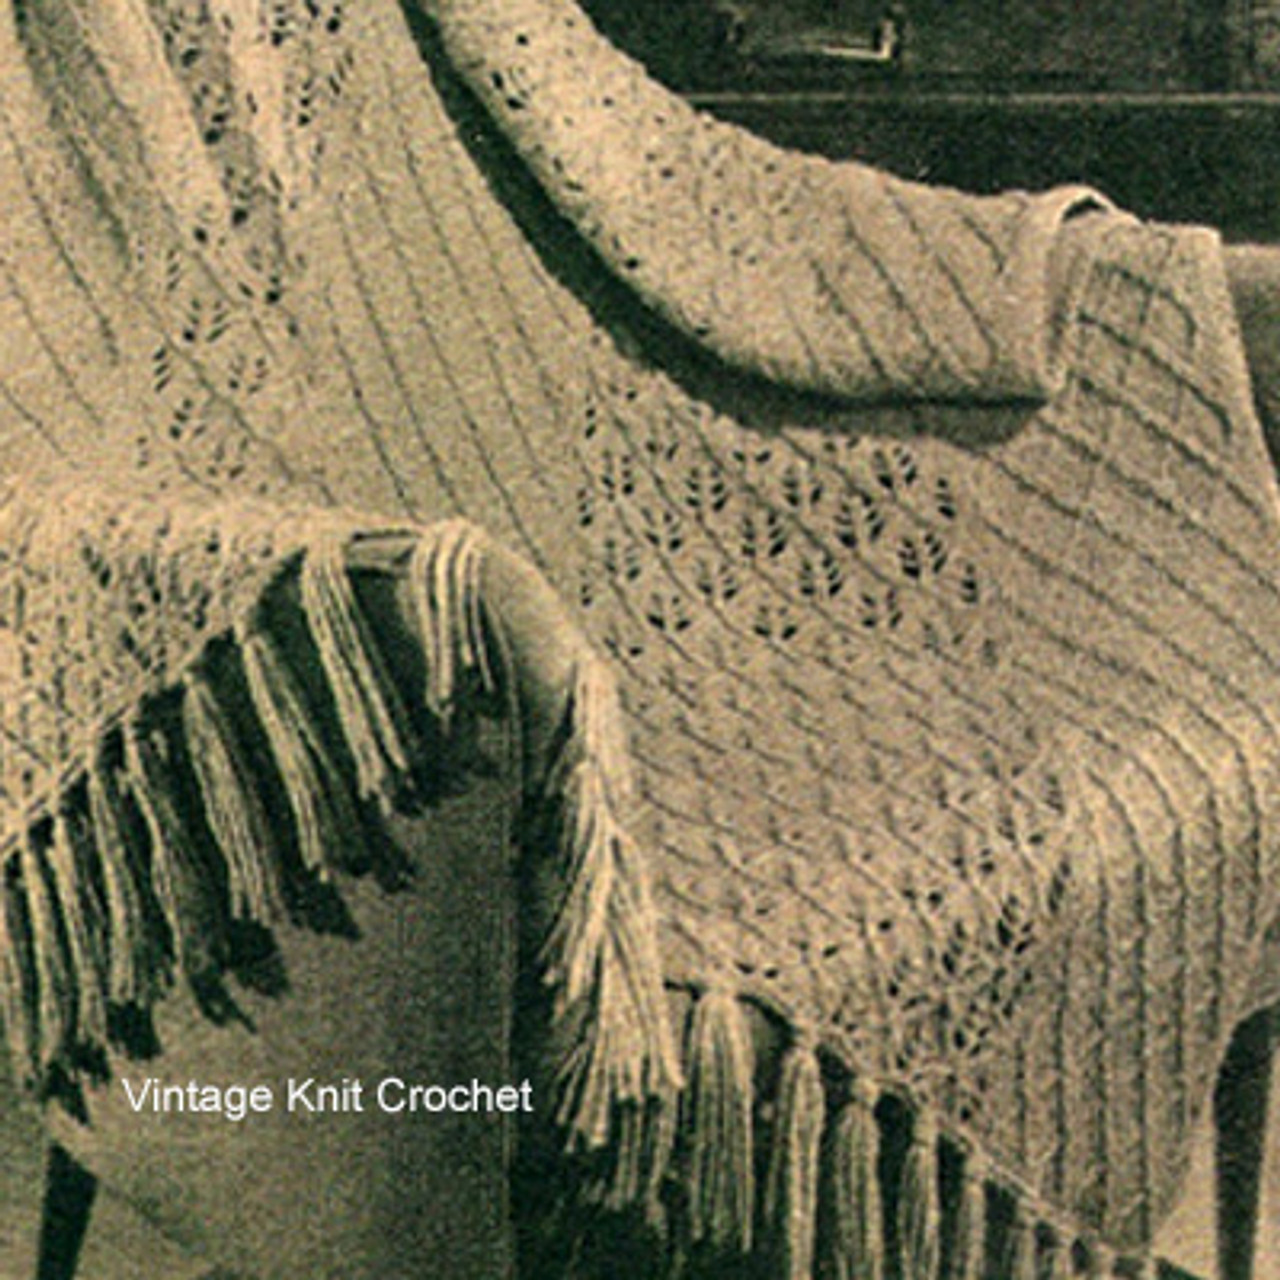 Knitted Lattice Afghan Pattern, Vintage 1950s from Workbasket